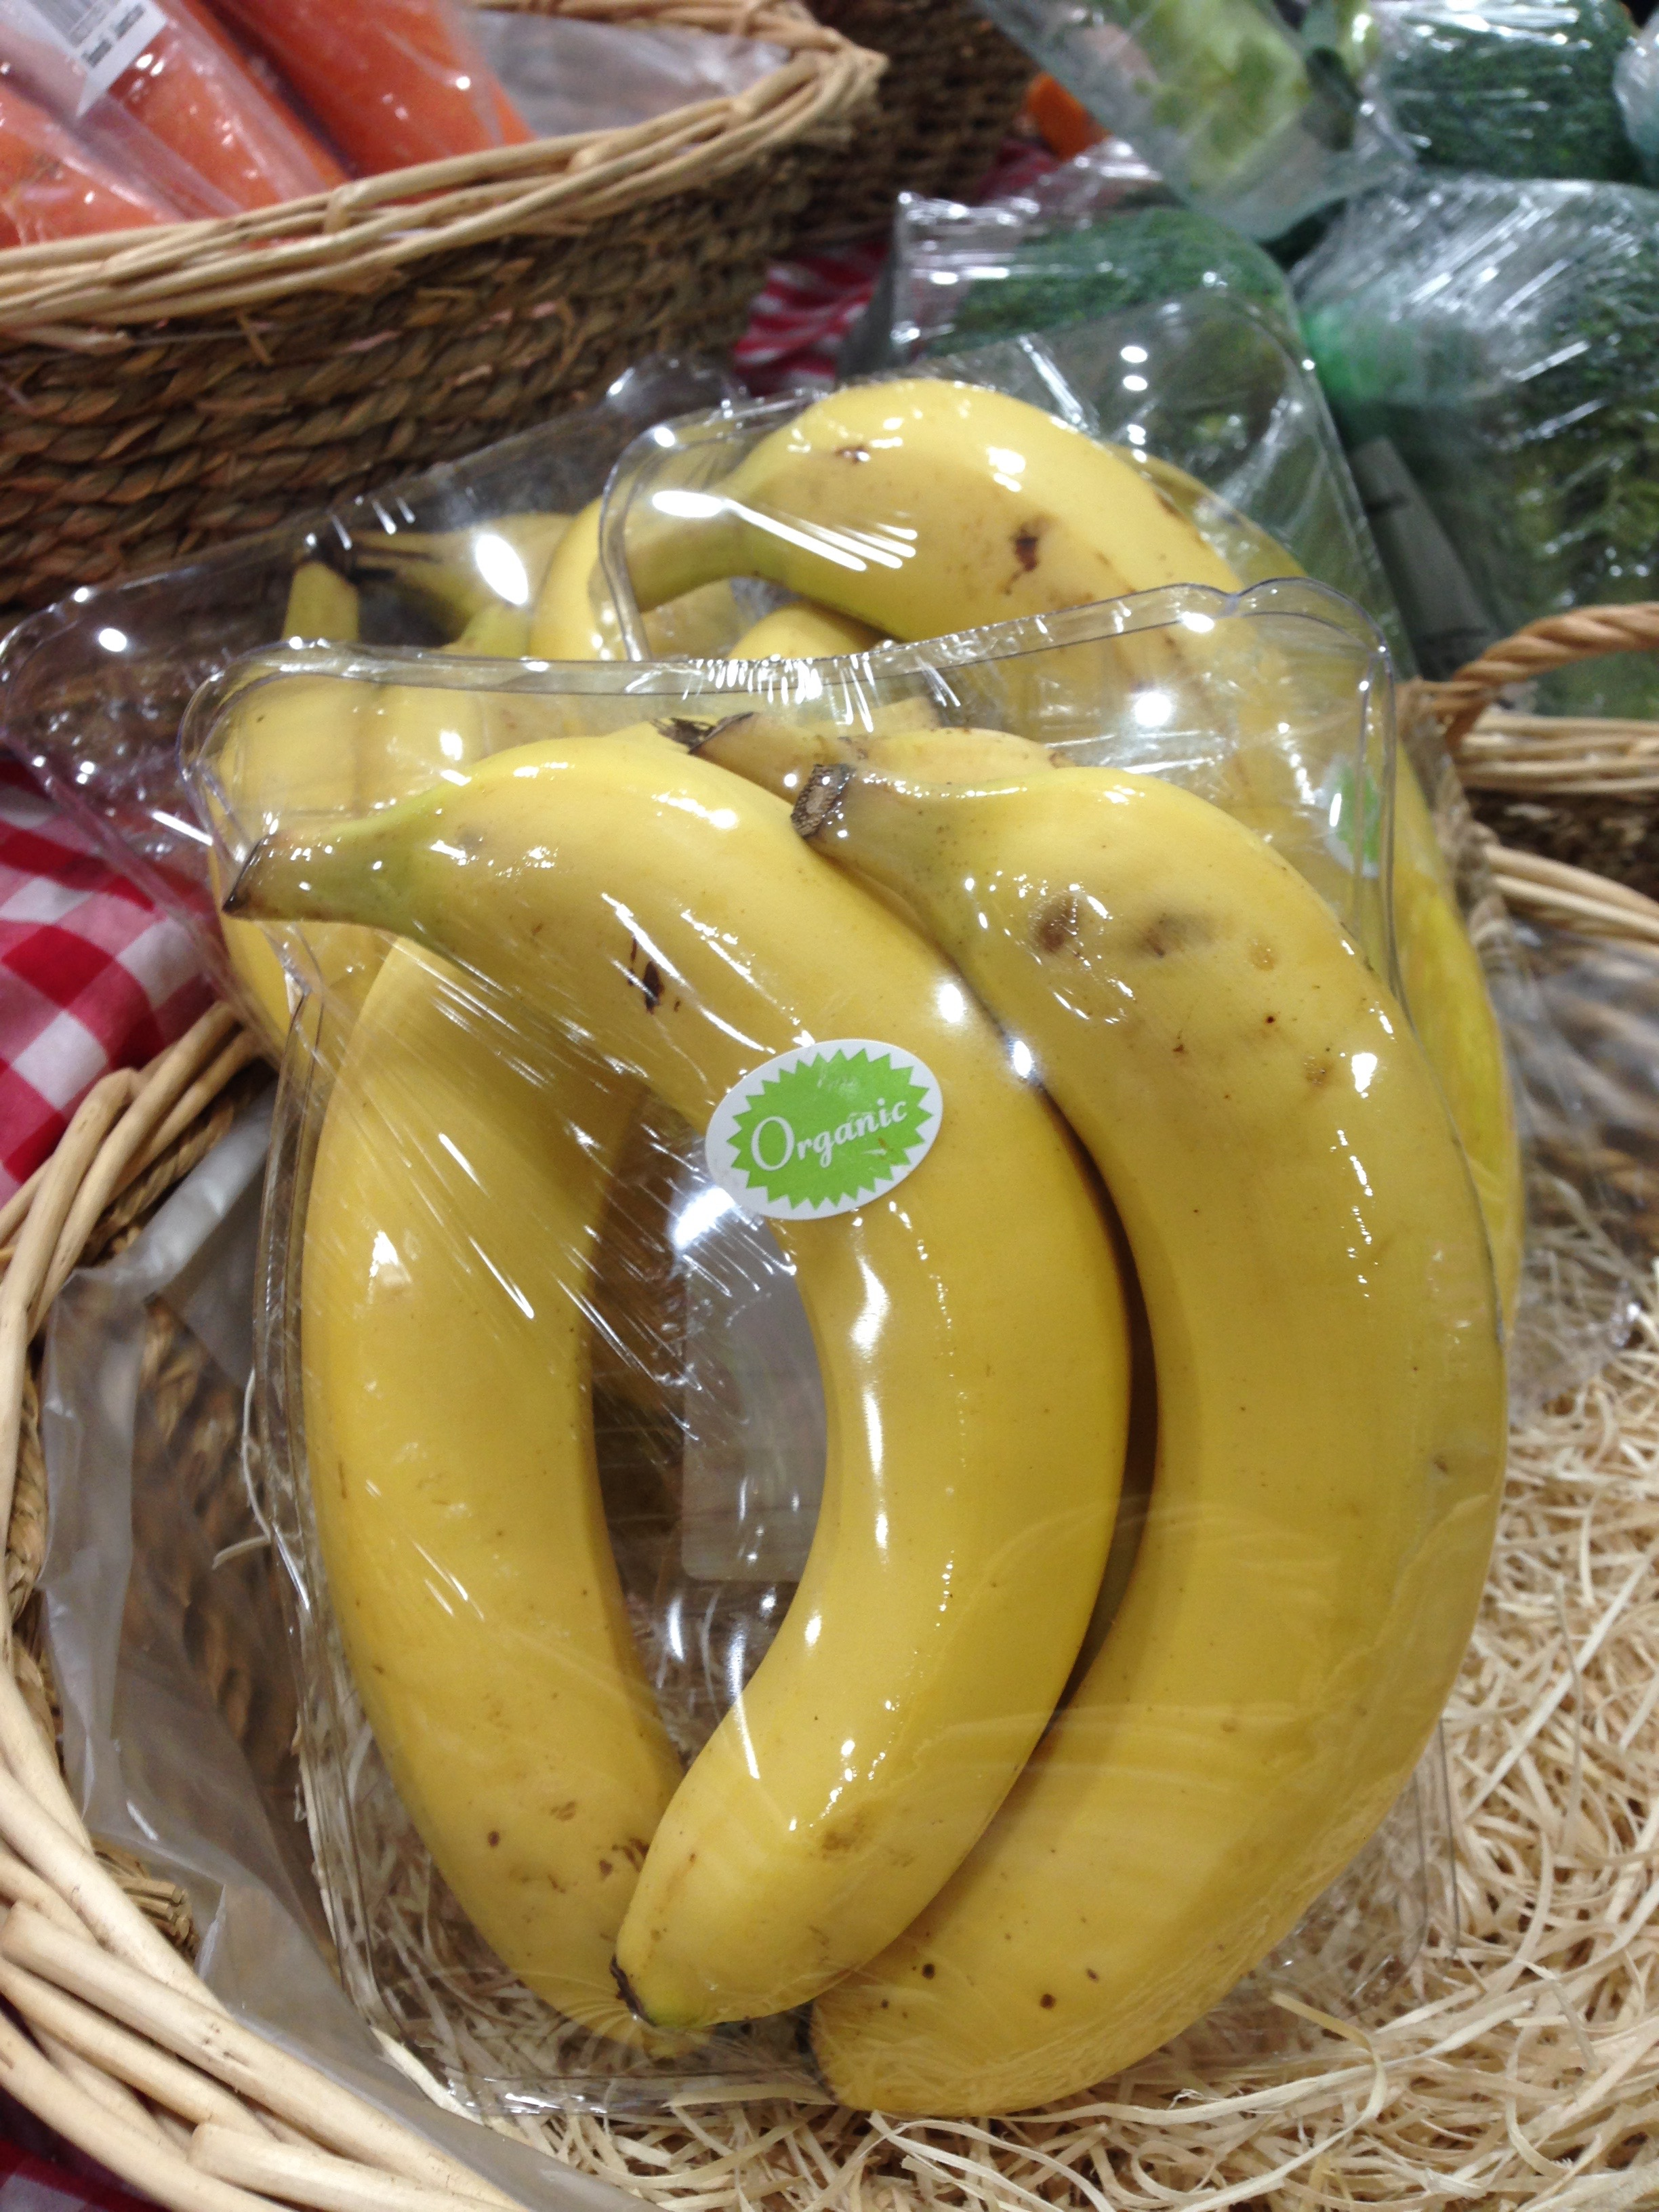 Bananas in plastic at Norton Street Grocer in Bondi Junction.